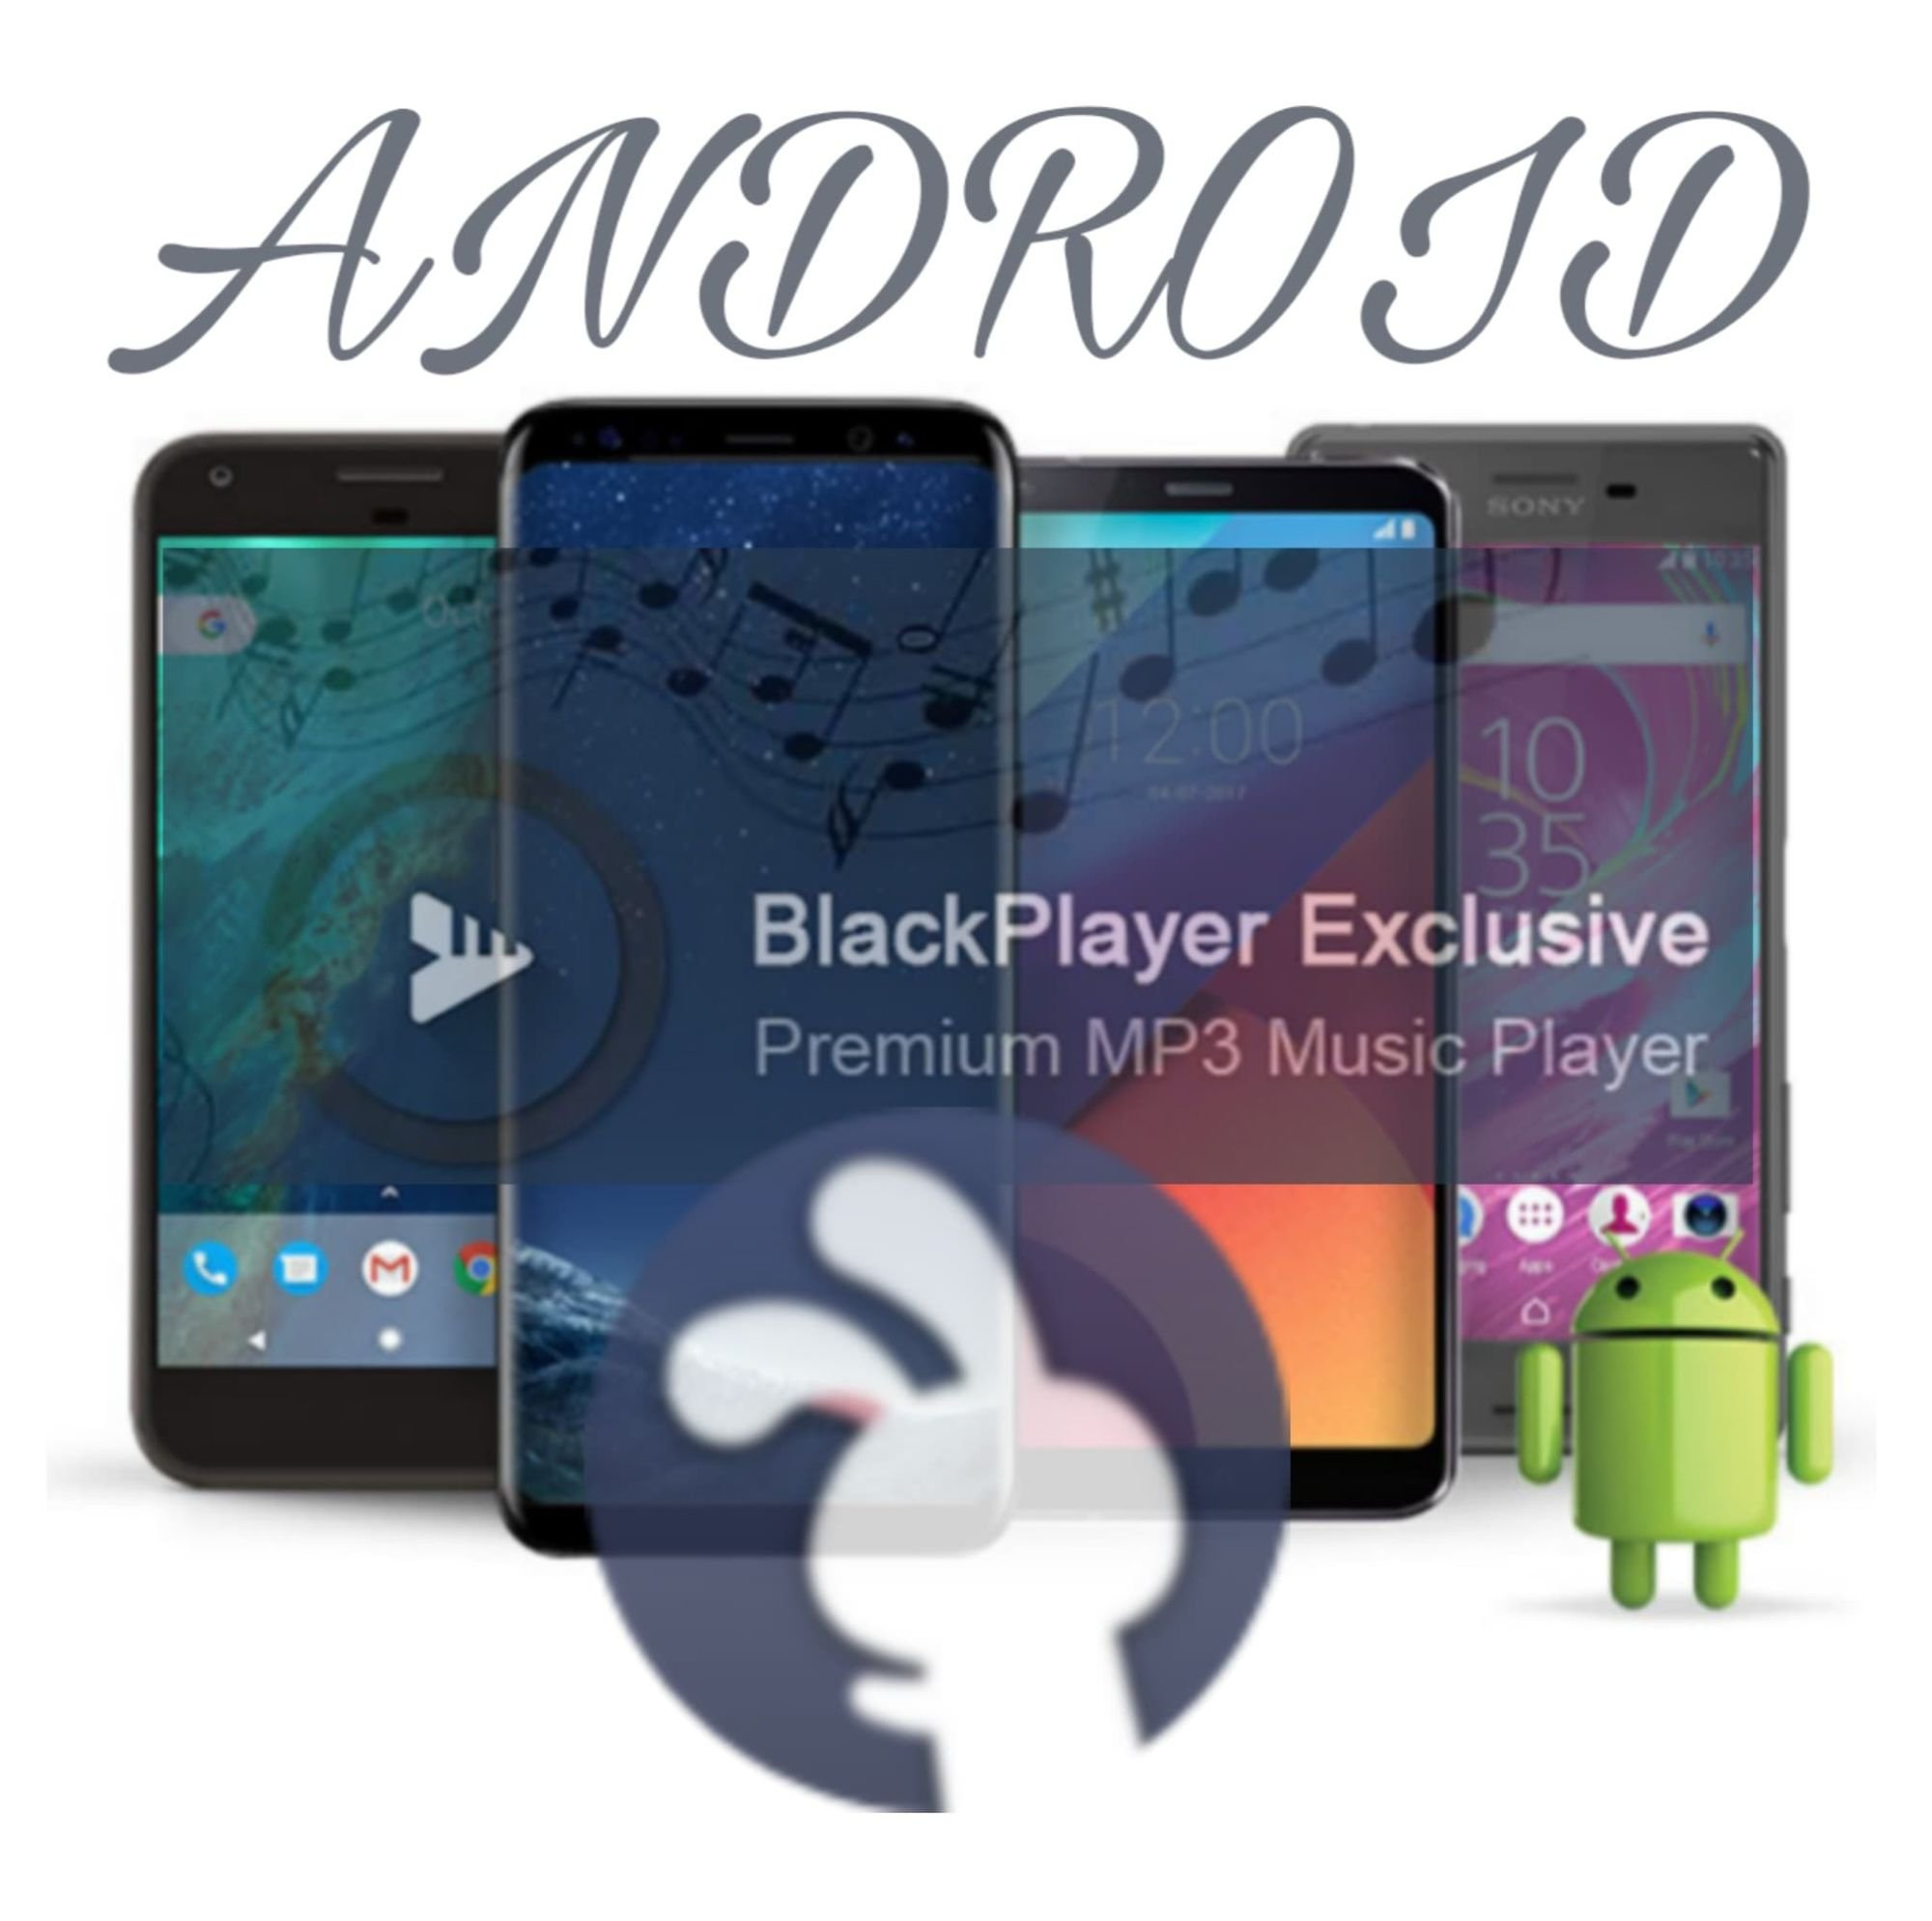 Android Latest Music Player Free Download  - BlackPlayer EX